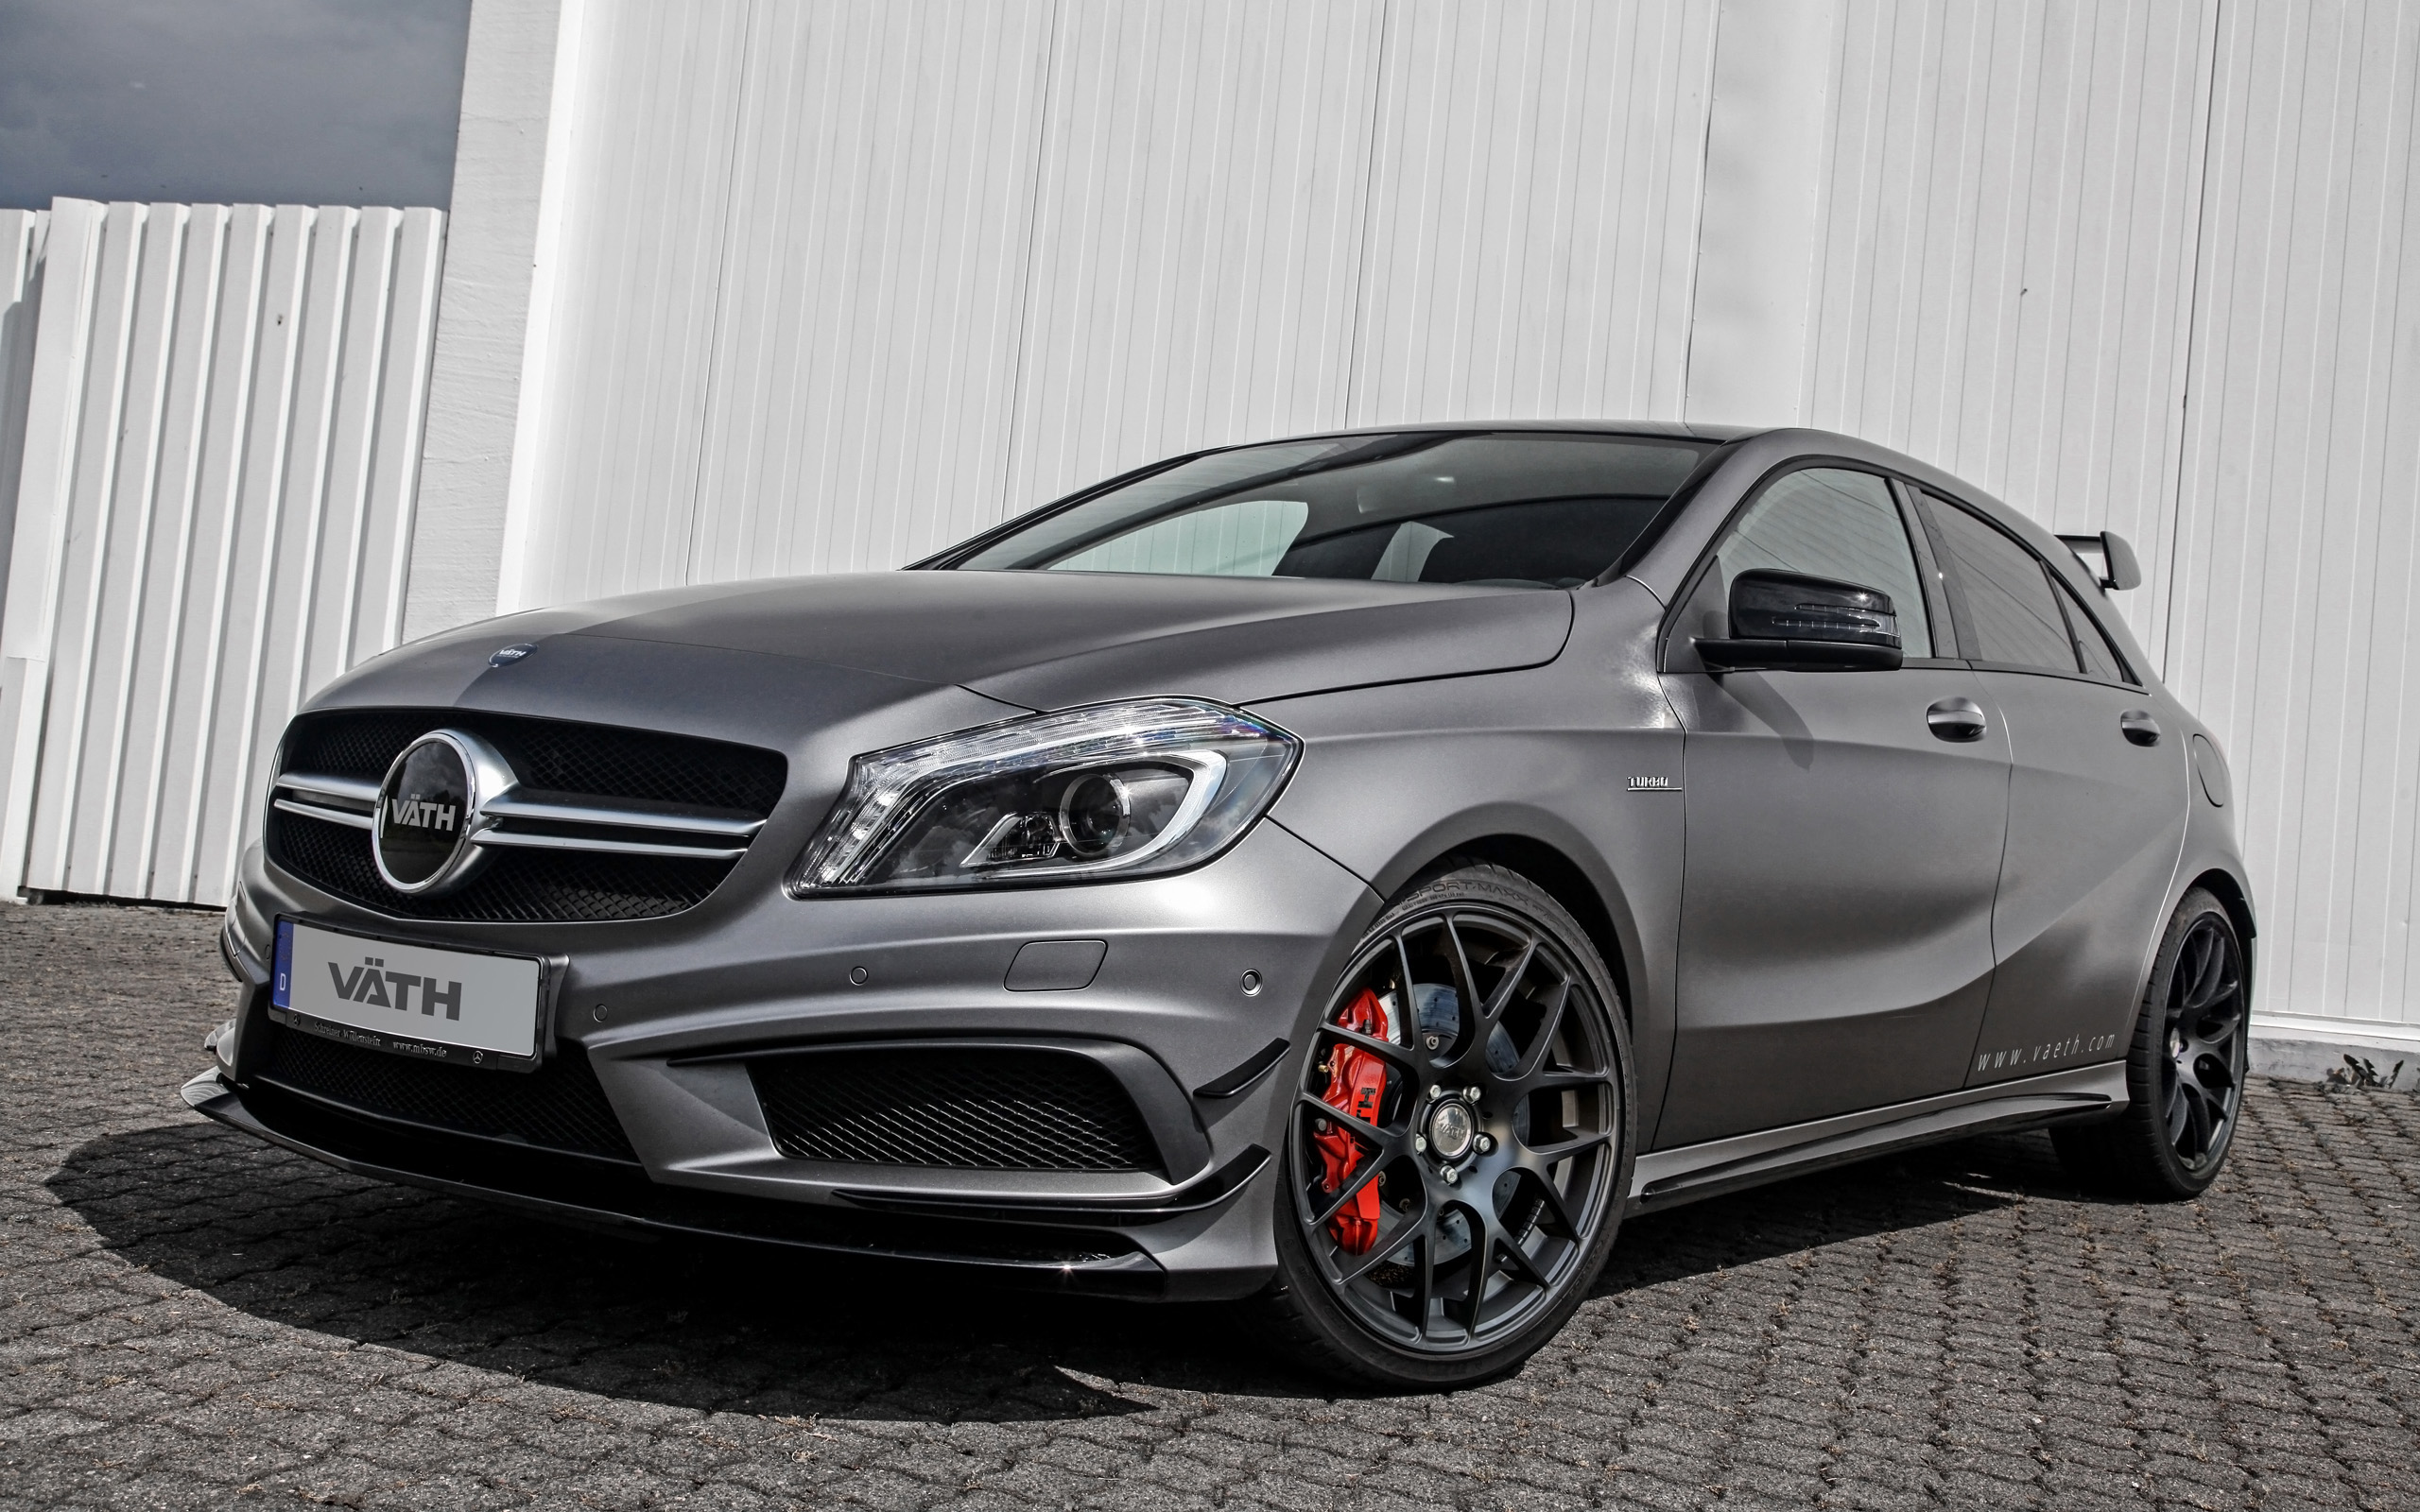 2014 vaeth mercedes benz a45 amg wallpaper hd car for Mercedes benz a45 amg